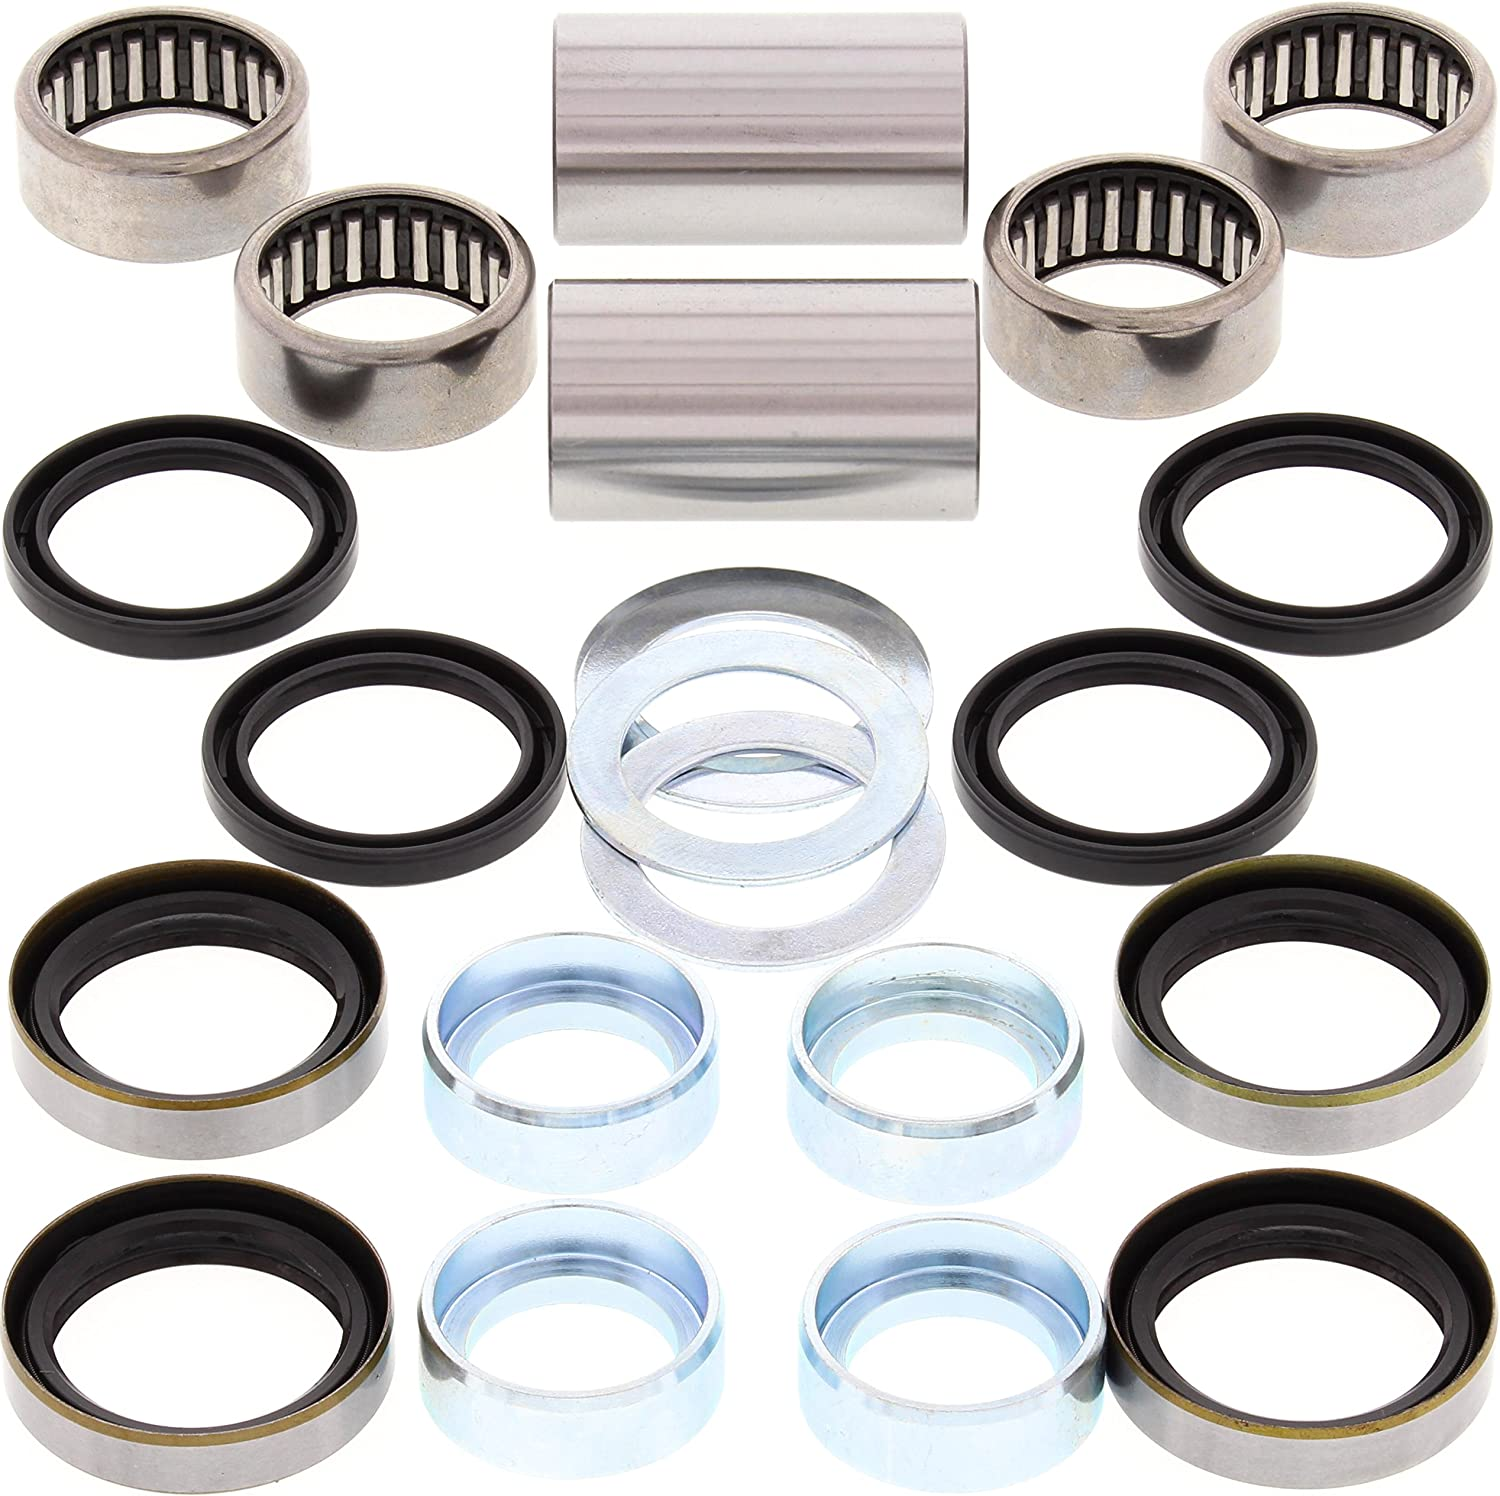 Swing Arm Bearing Kit For 2012 KTM 250 XC Offroad Motorcycle All Balls 28-1168